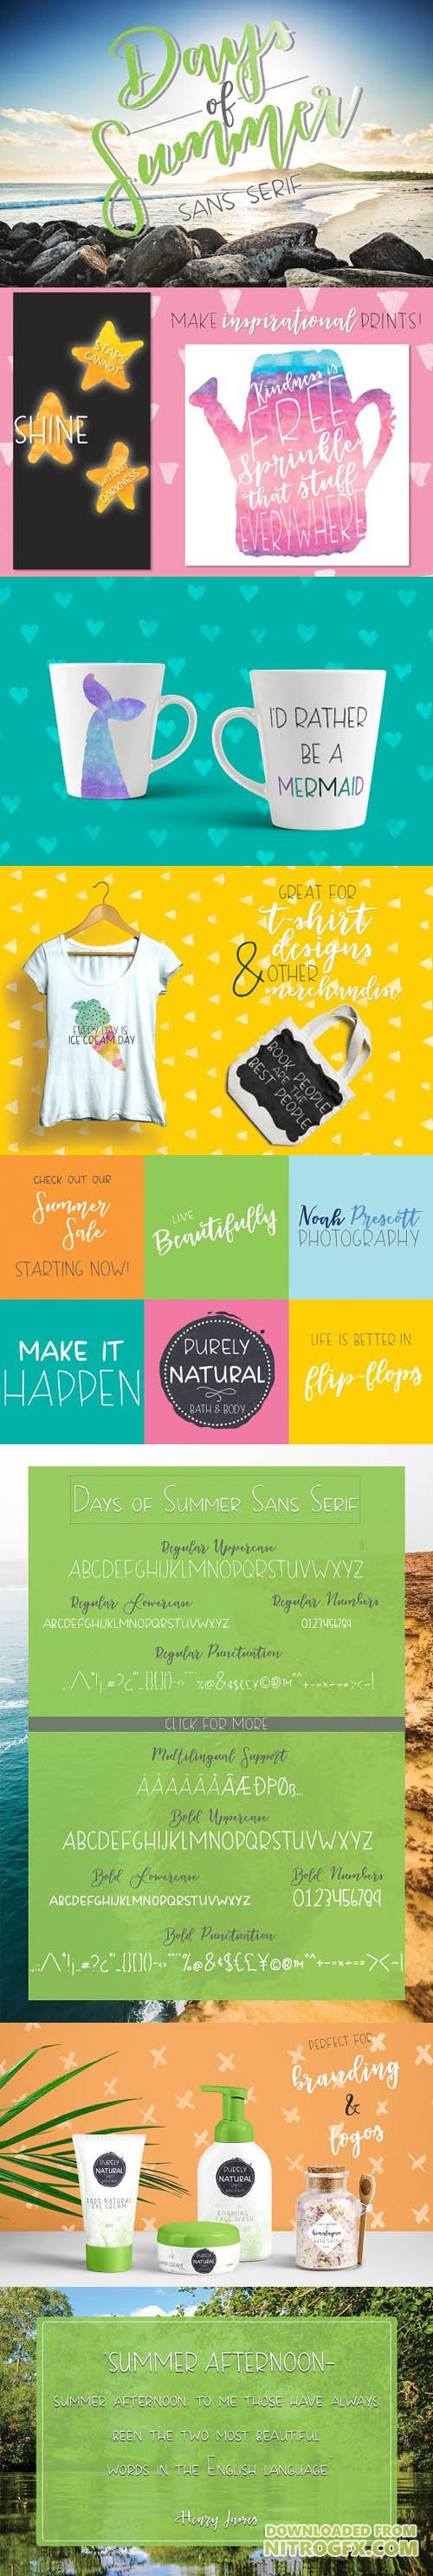 Creativemarket - Days of Summer Sans Serif 1721095